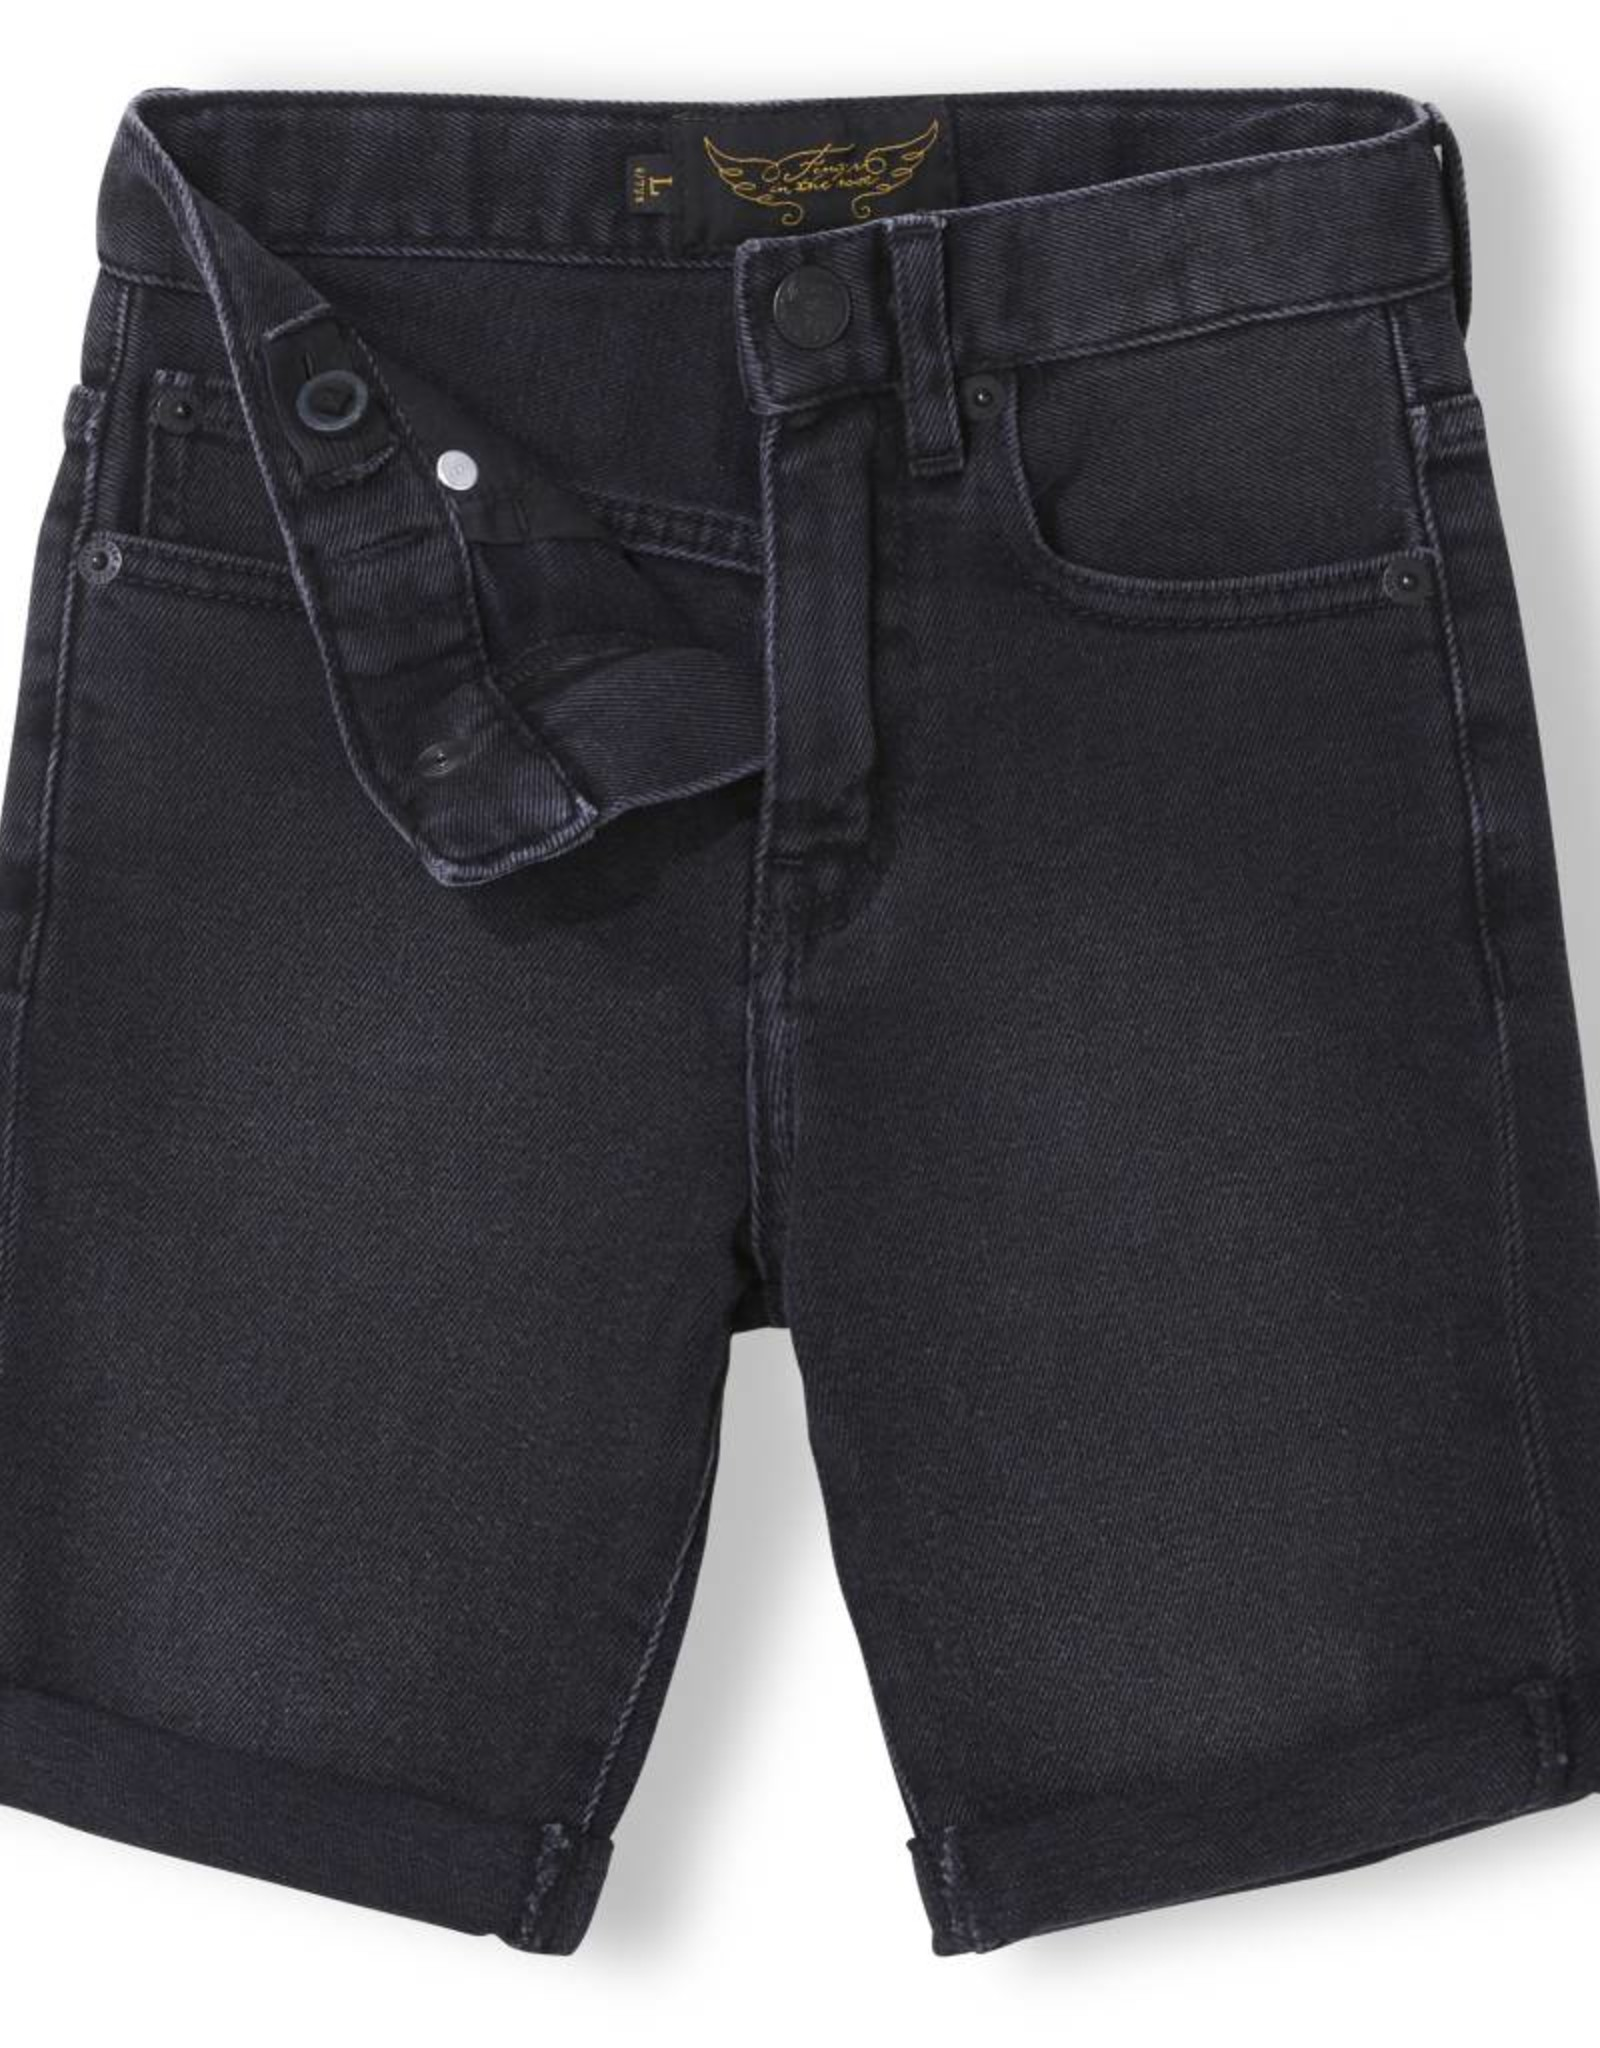 Edmond Khol Denim